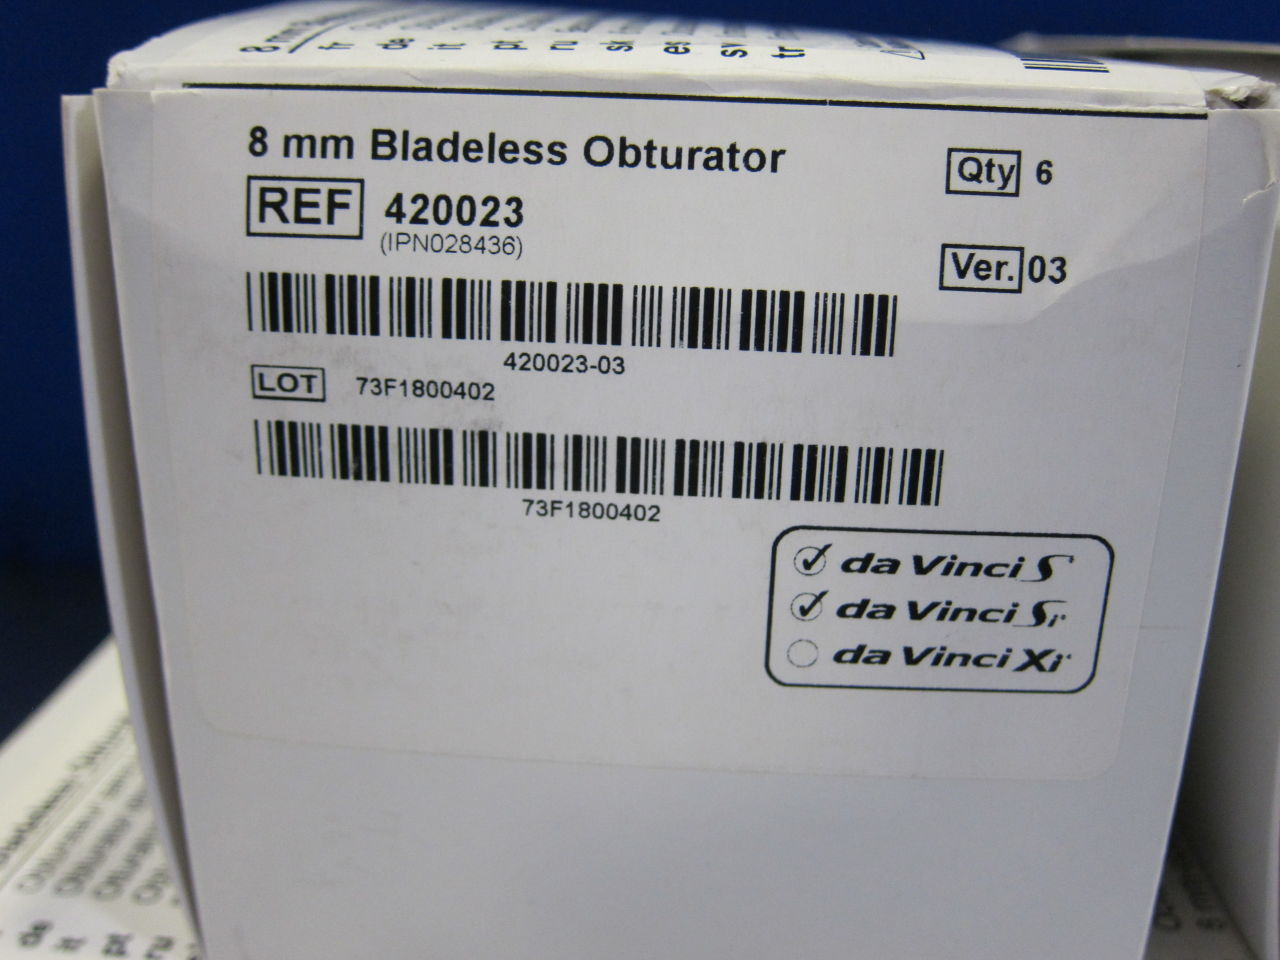 INTUITIVE SURGICAL 420023 Bladeless Obturator - Lot of 30